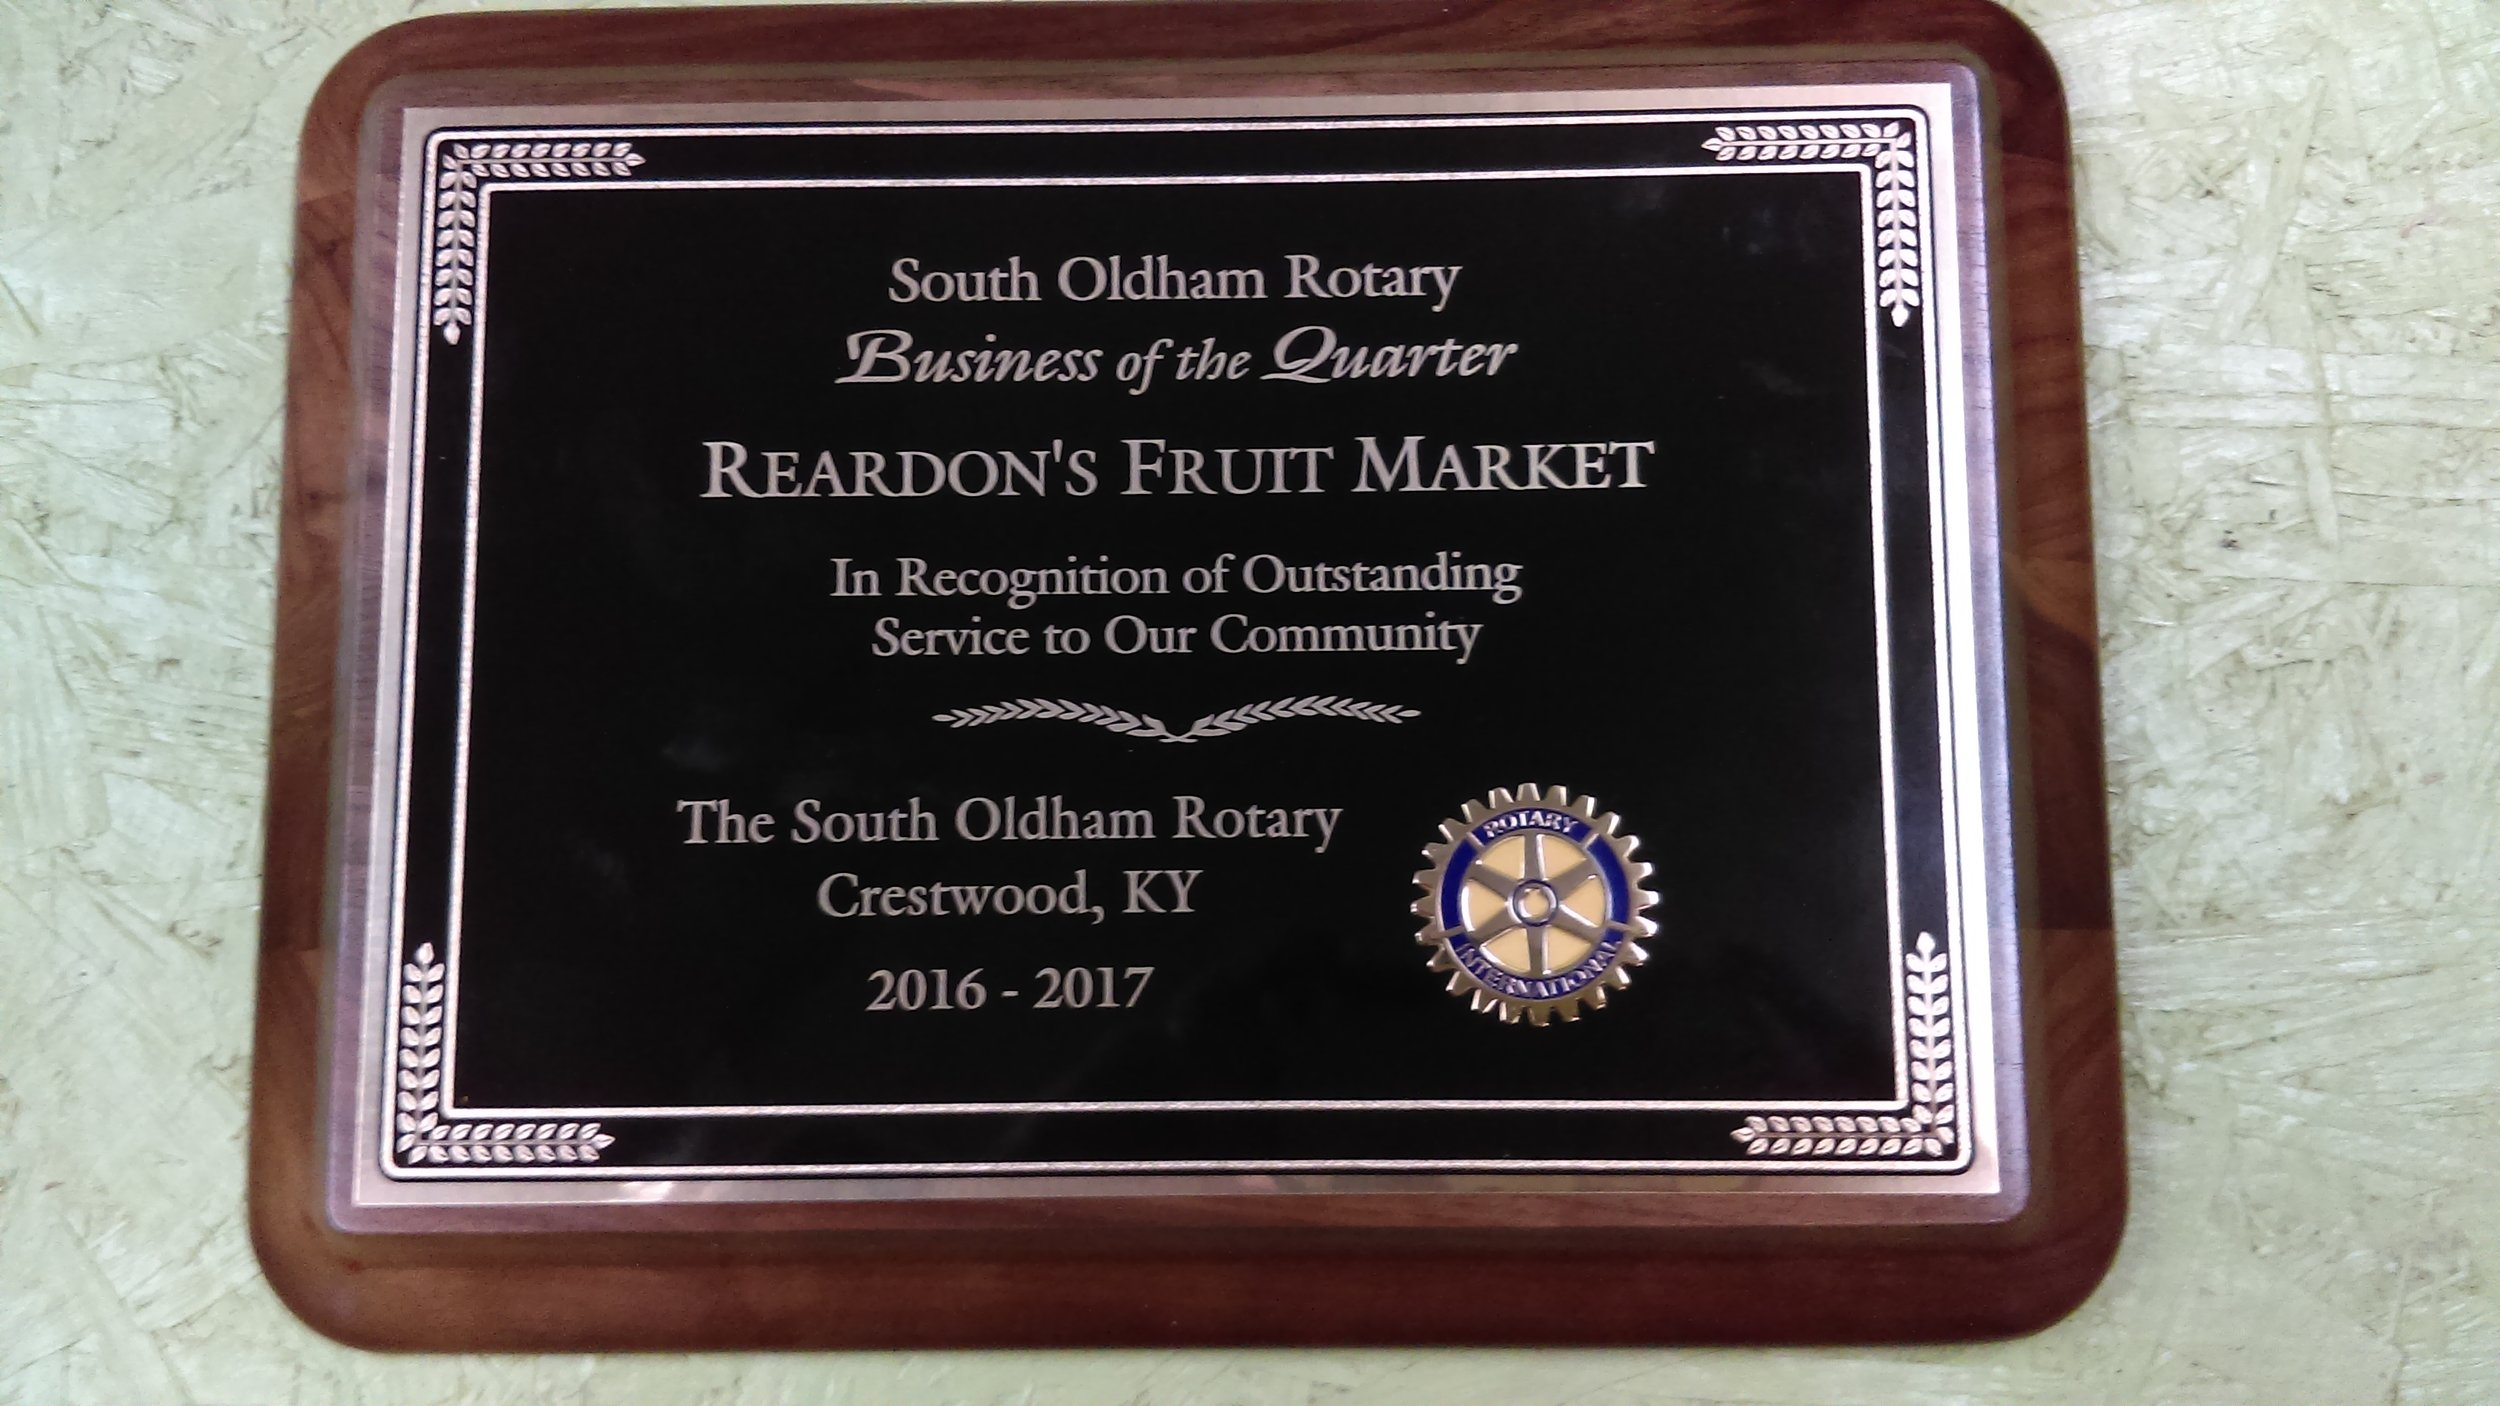 - Reardon's received the Business of the Quarter award from the Rotary Club.